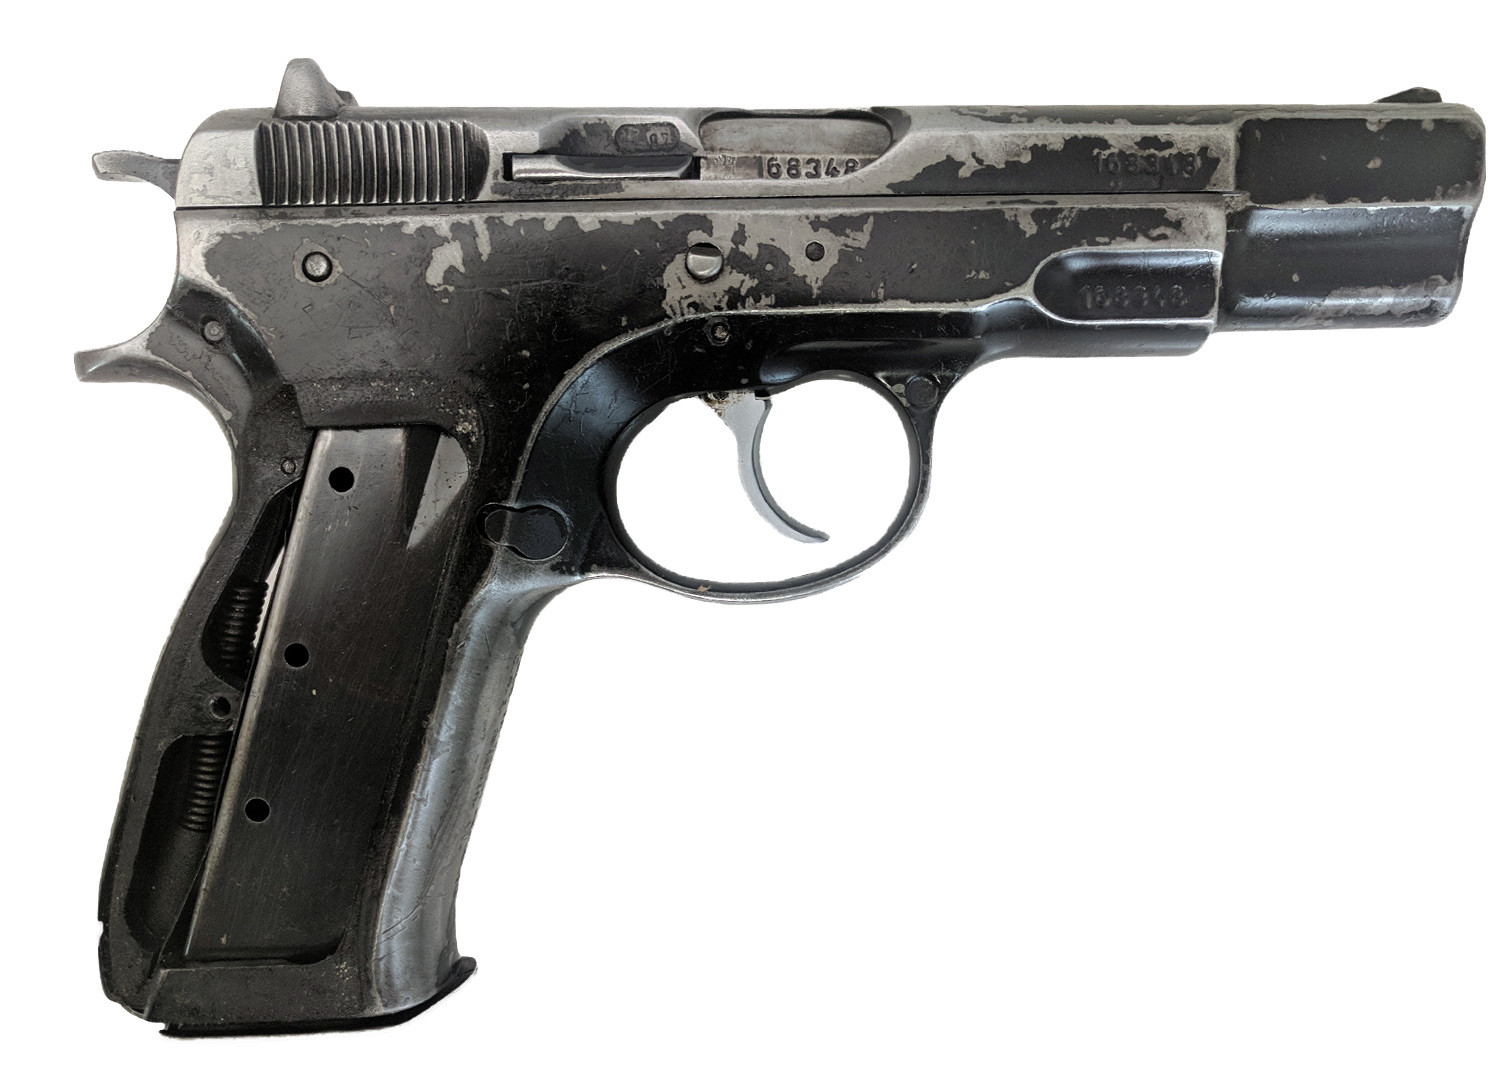 CZ 75, 9mm, *Good, Incomplete, No Magazine*